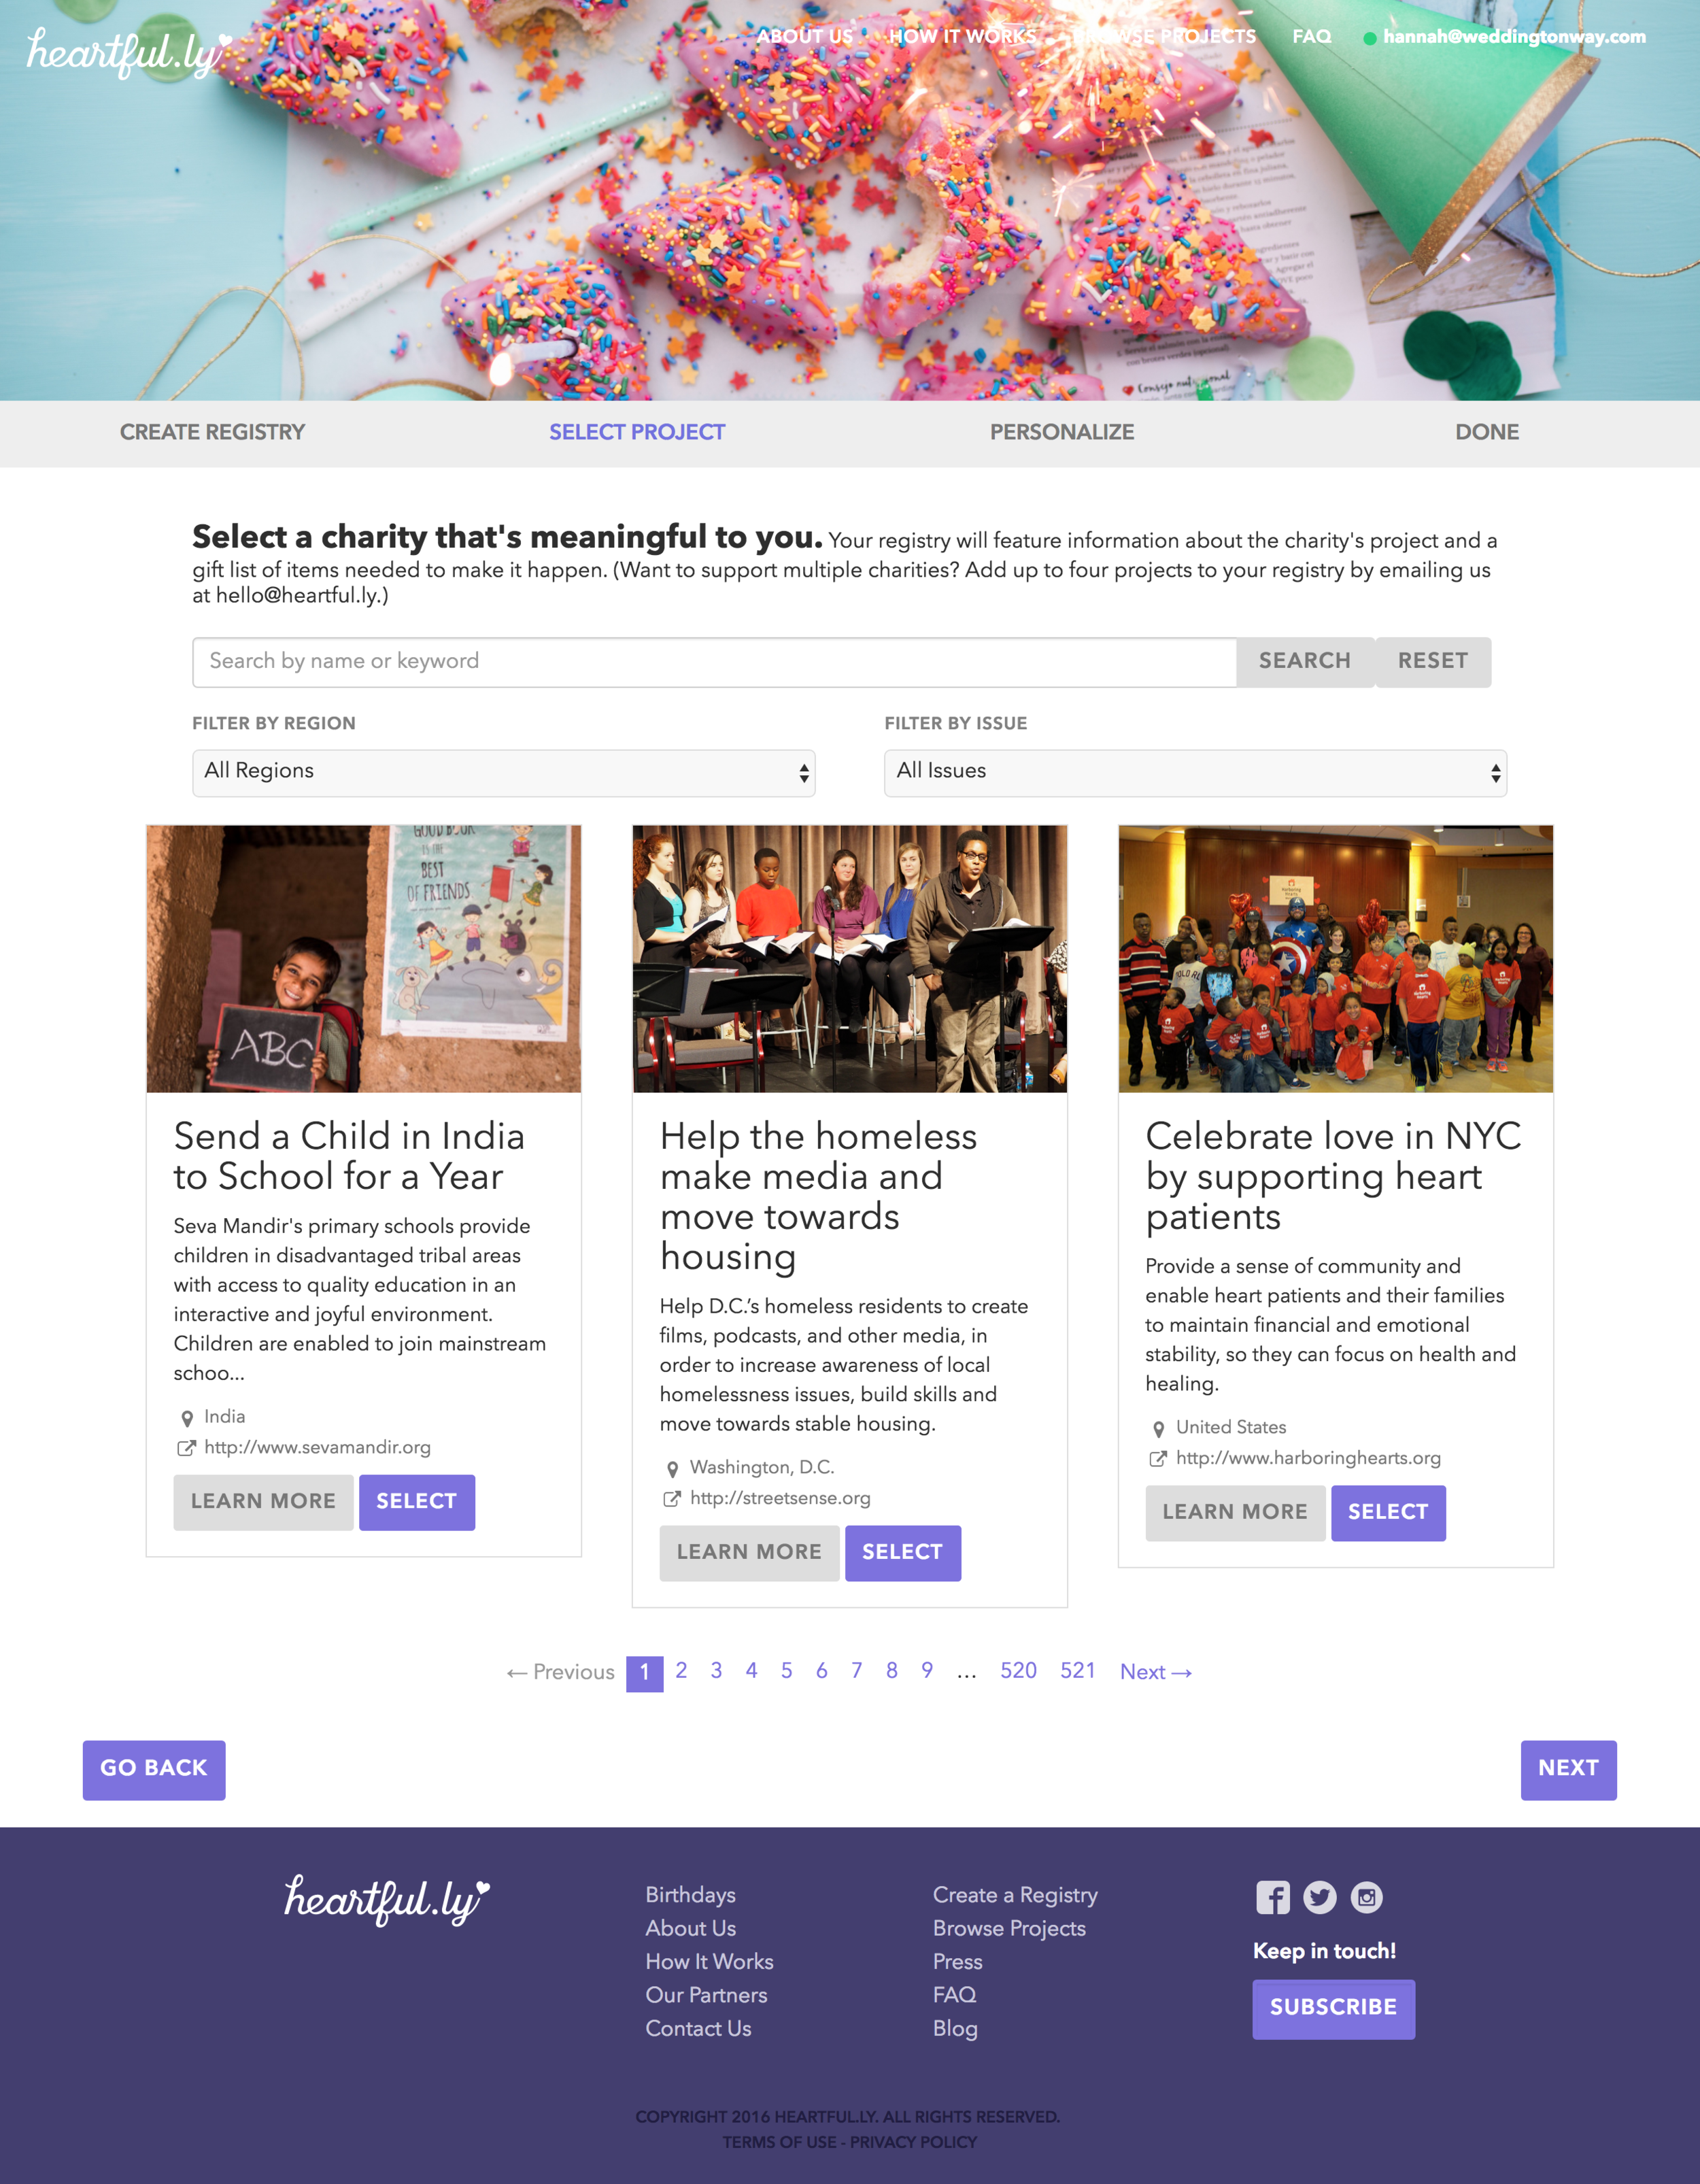 screencapture-heartful-ly-registries-new-1498537002368.png